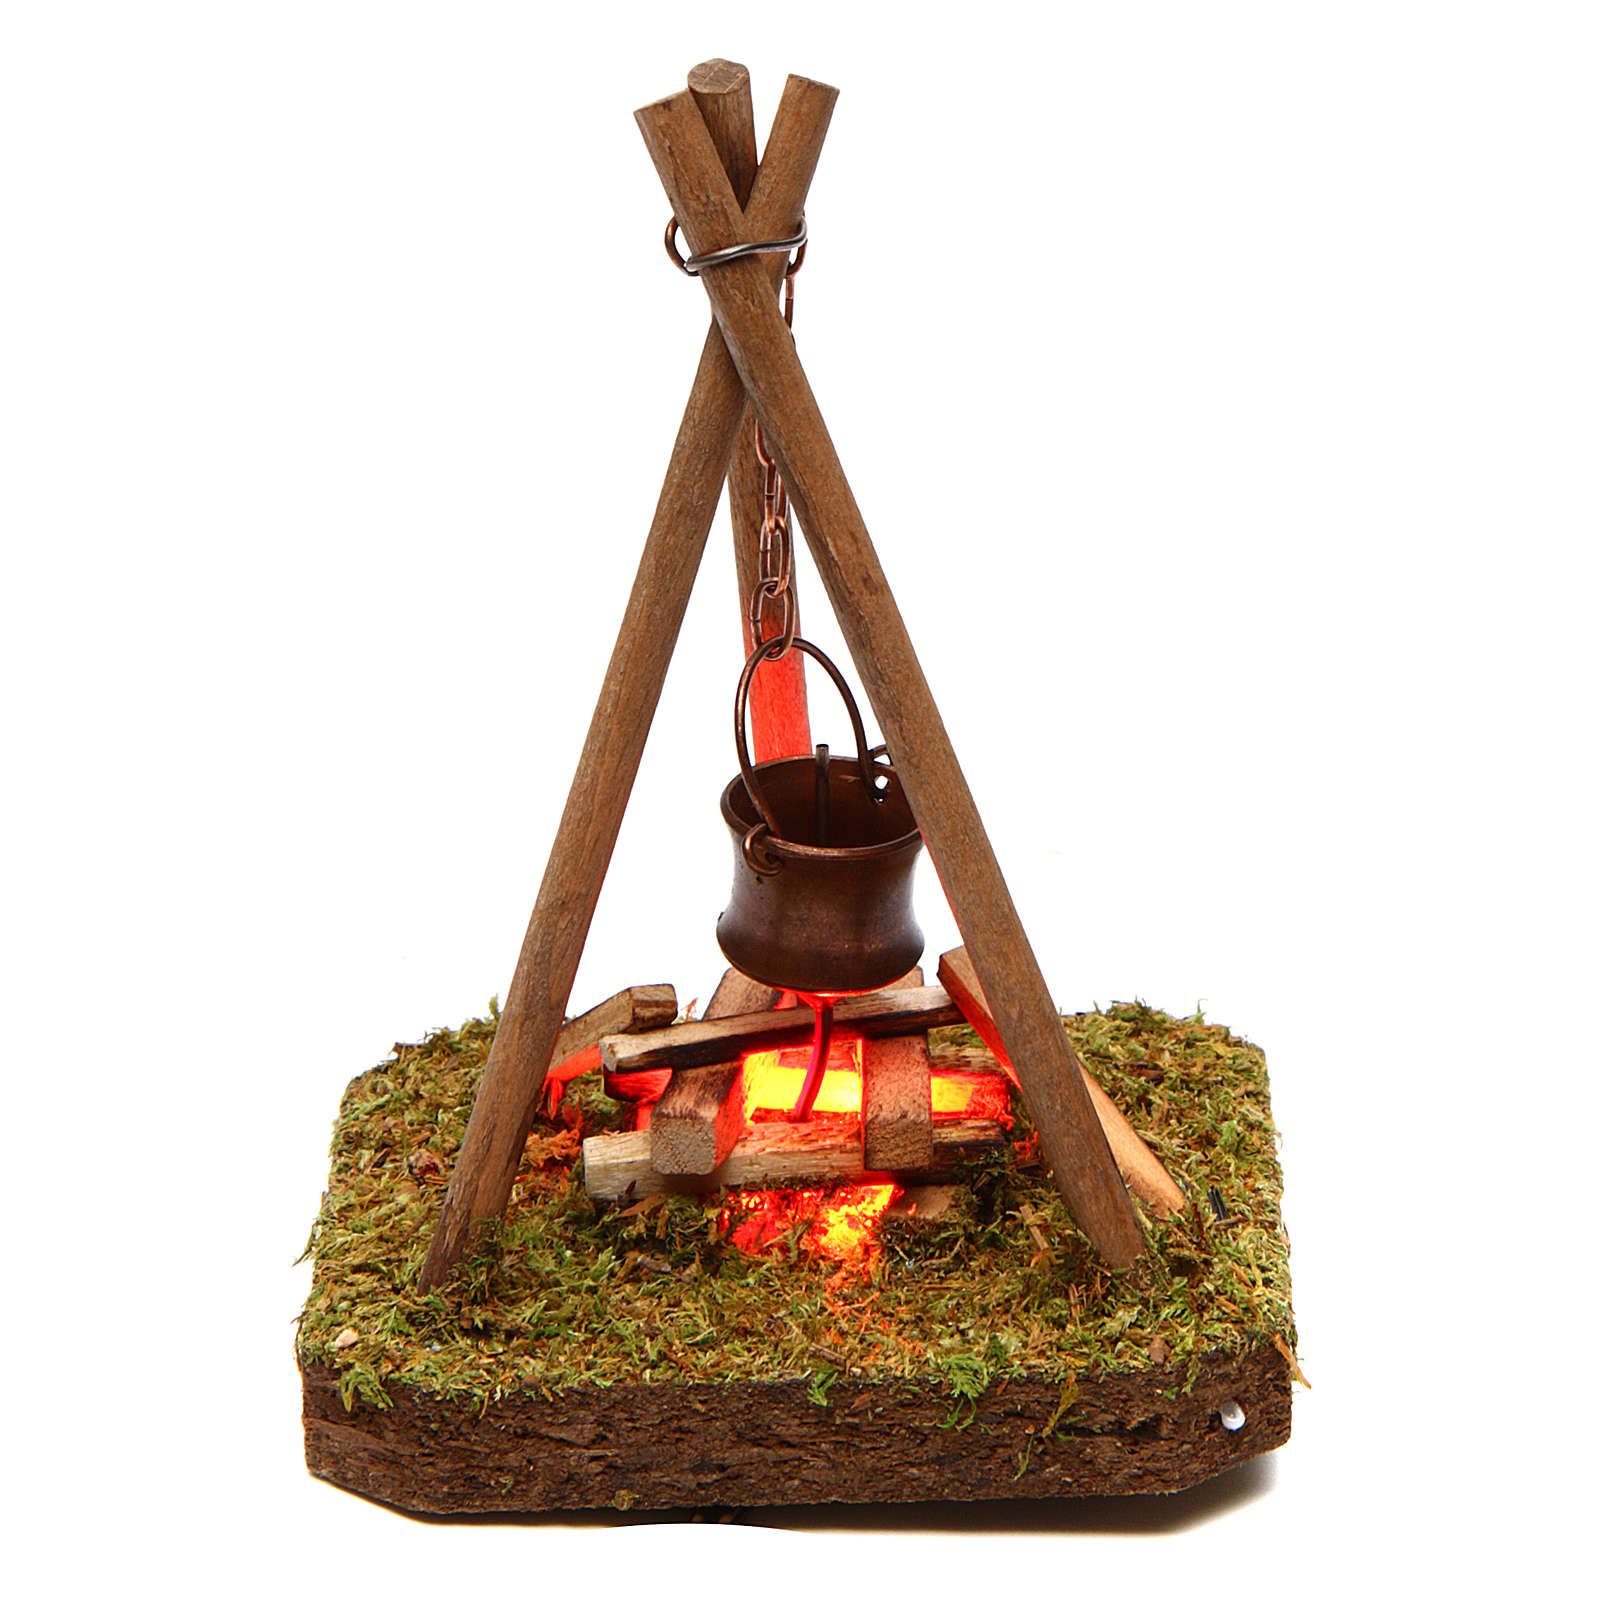 Nativity scene setting 10x10x10 cm pot on campfire 4,5 V 4